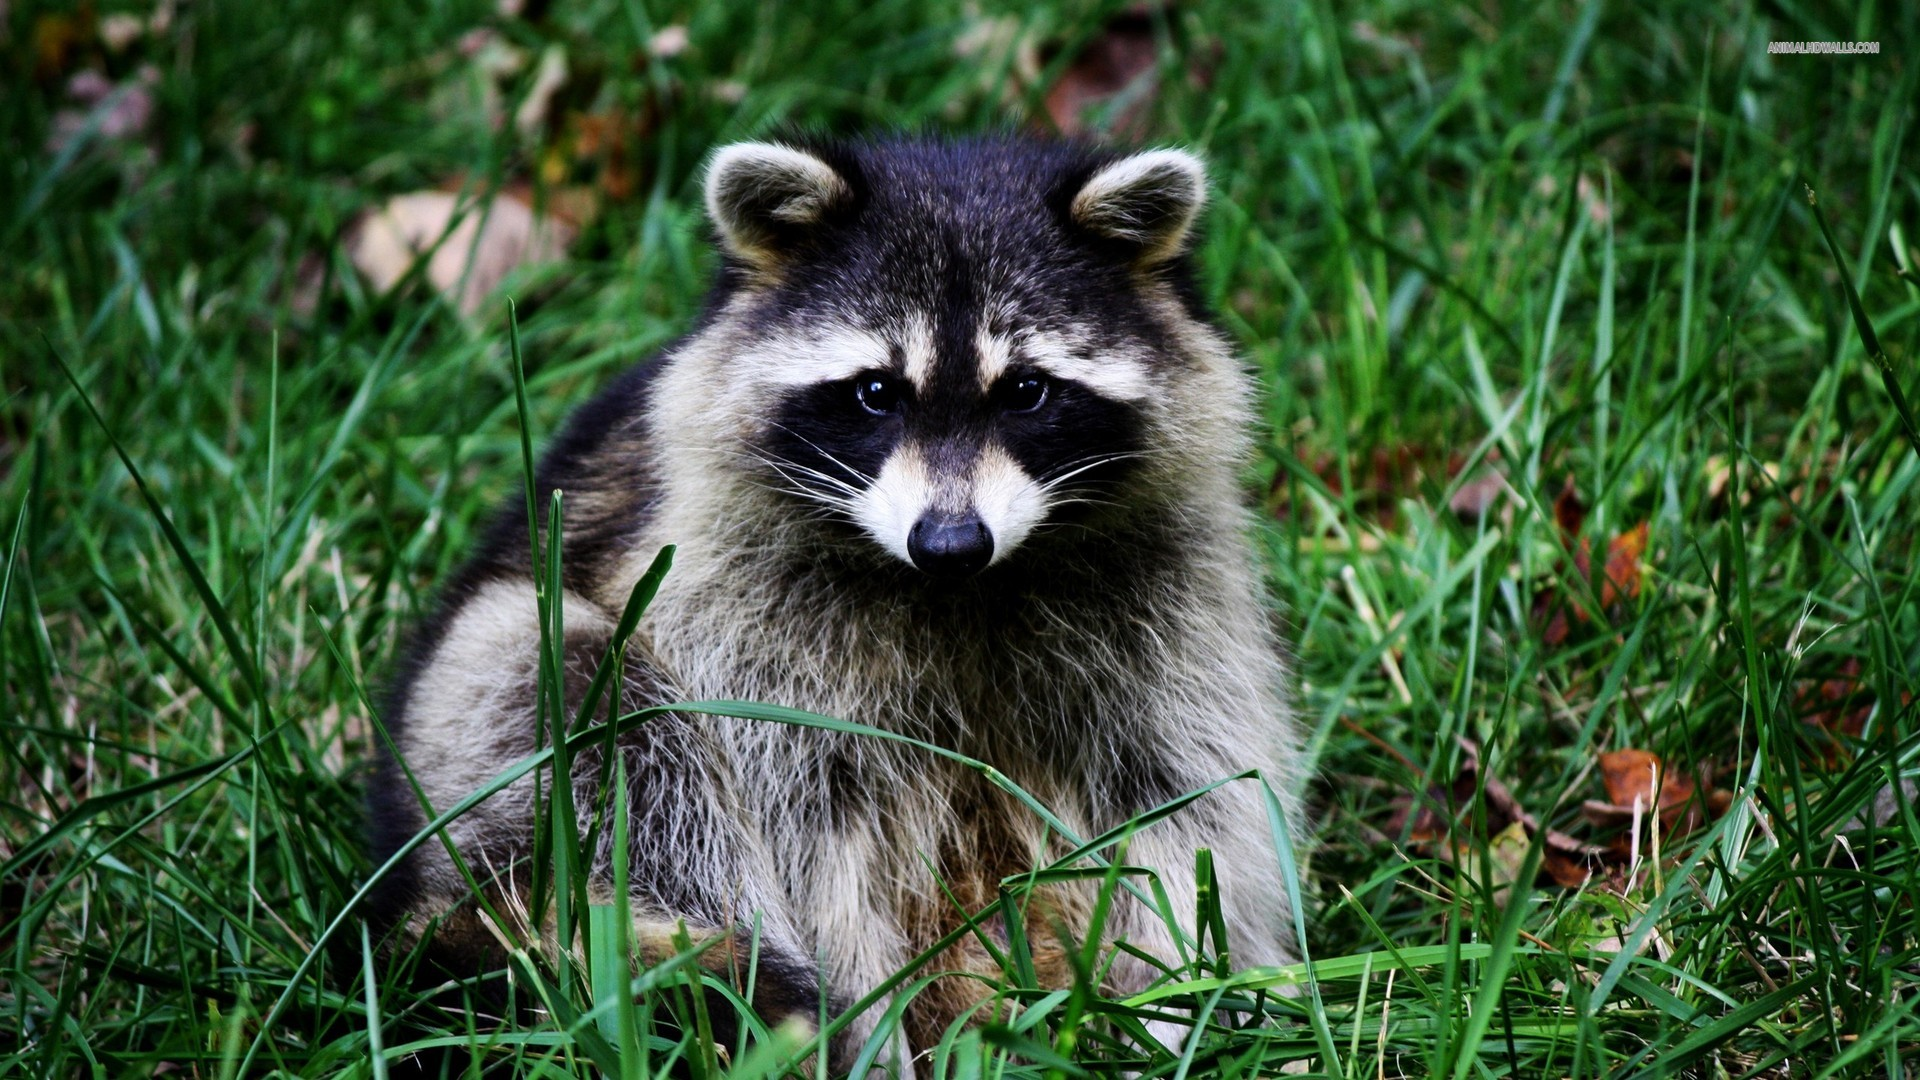 raccoon wallpaper | 1920x1080 | #58938